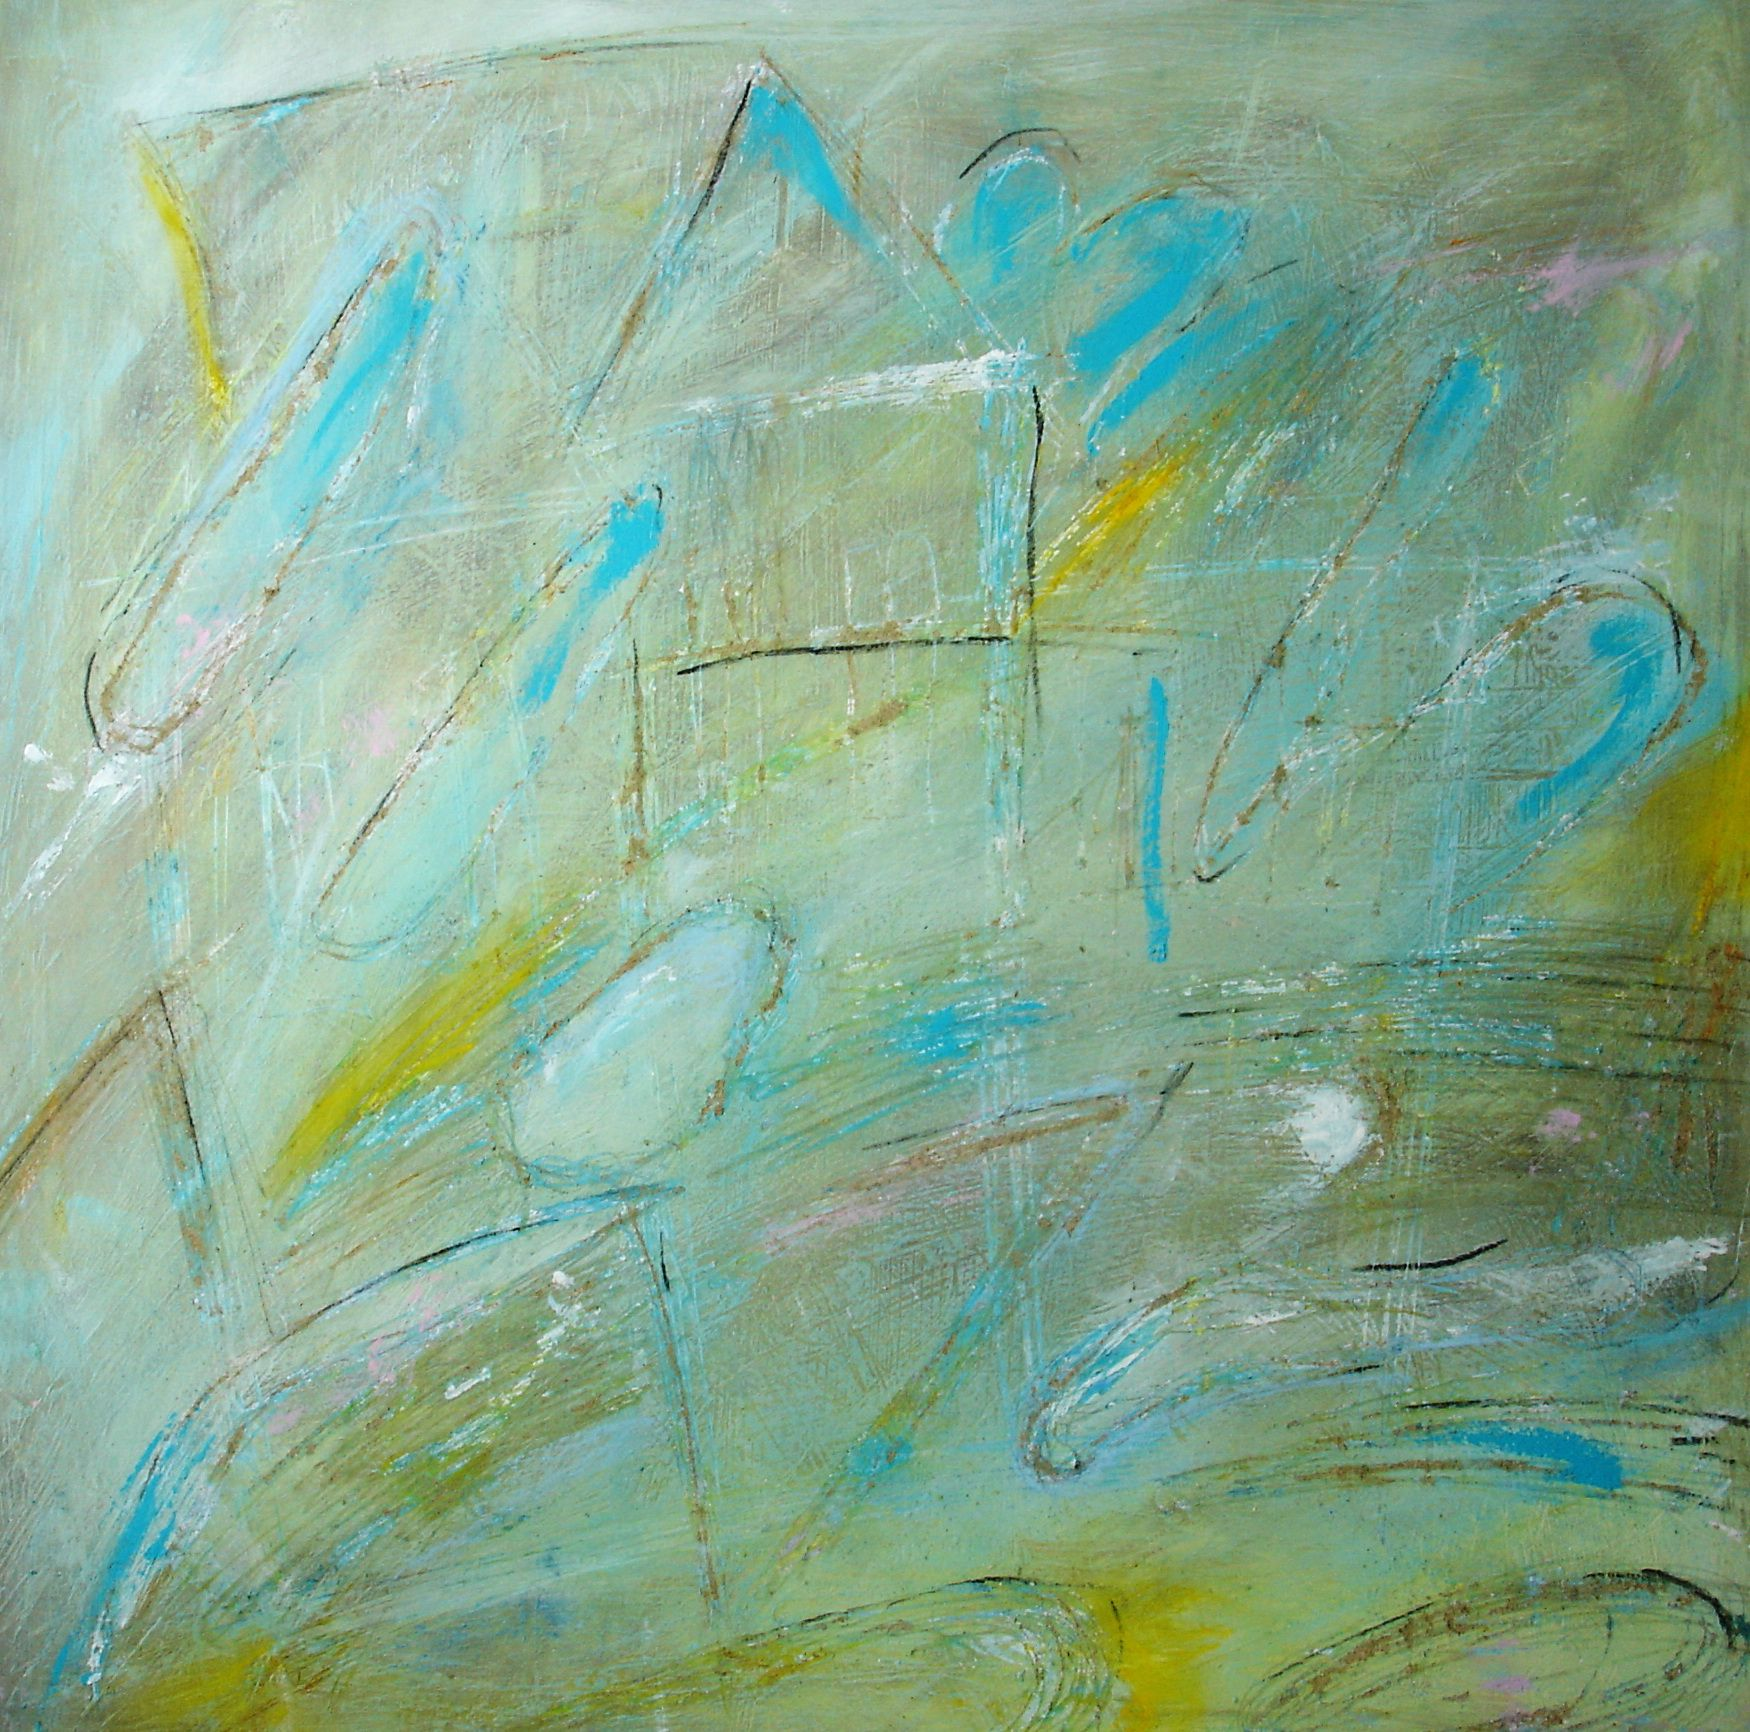 60x60 cm  acrylic paintings on sololit, My own paintings : Ask me to informations and prices on email : ivana.pelouchova@...